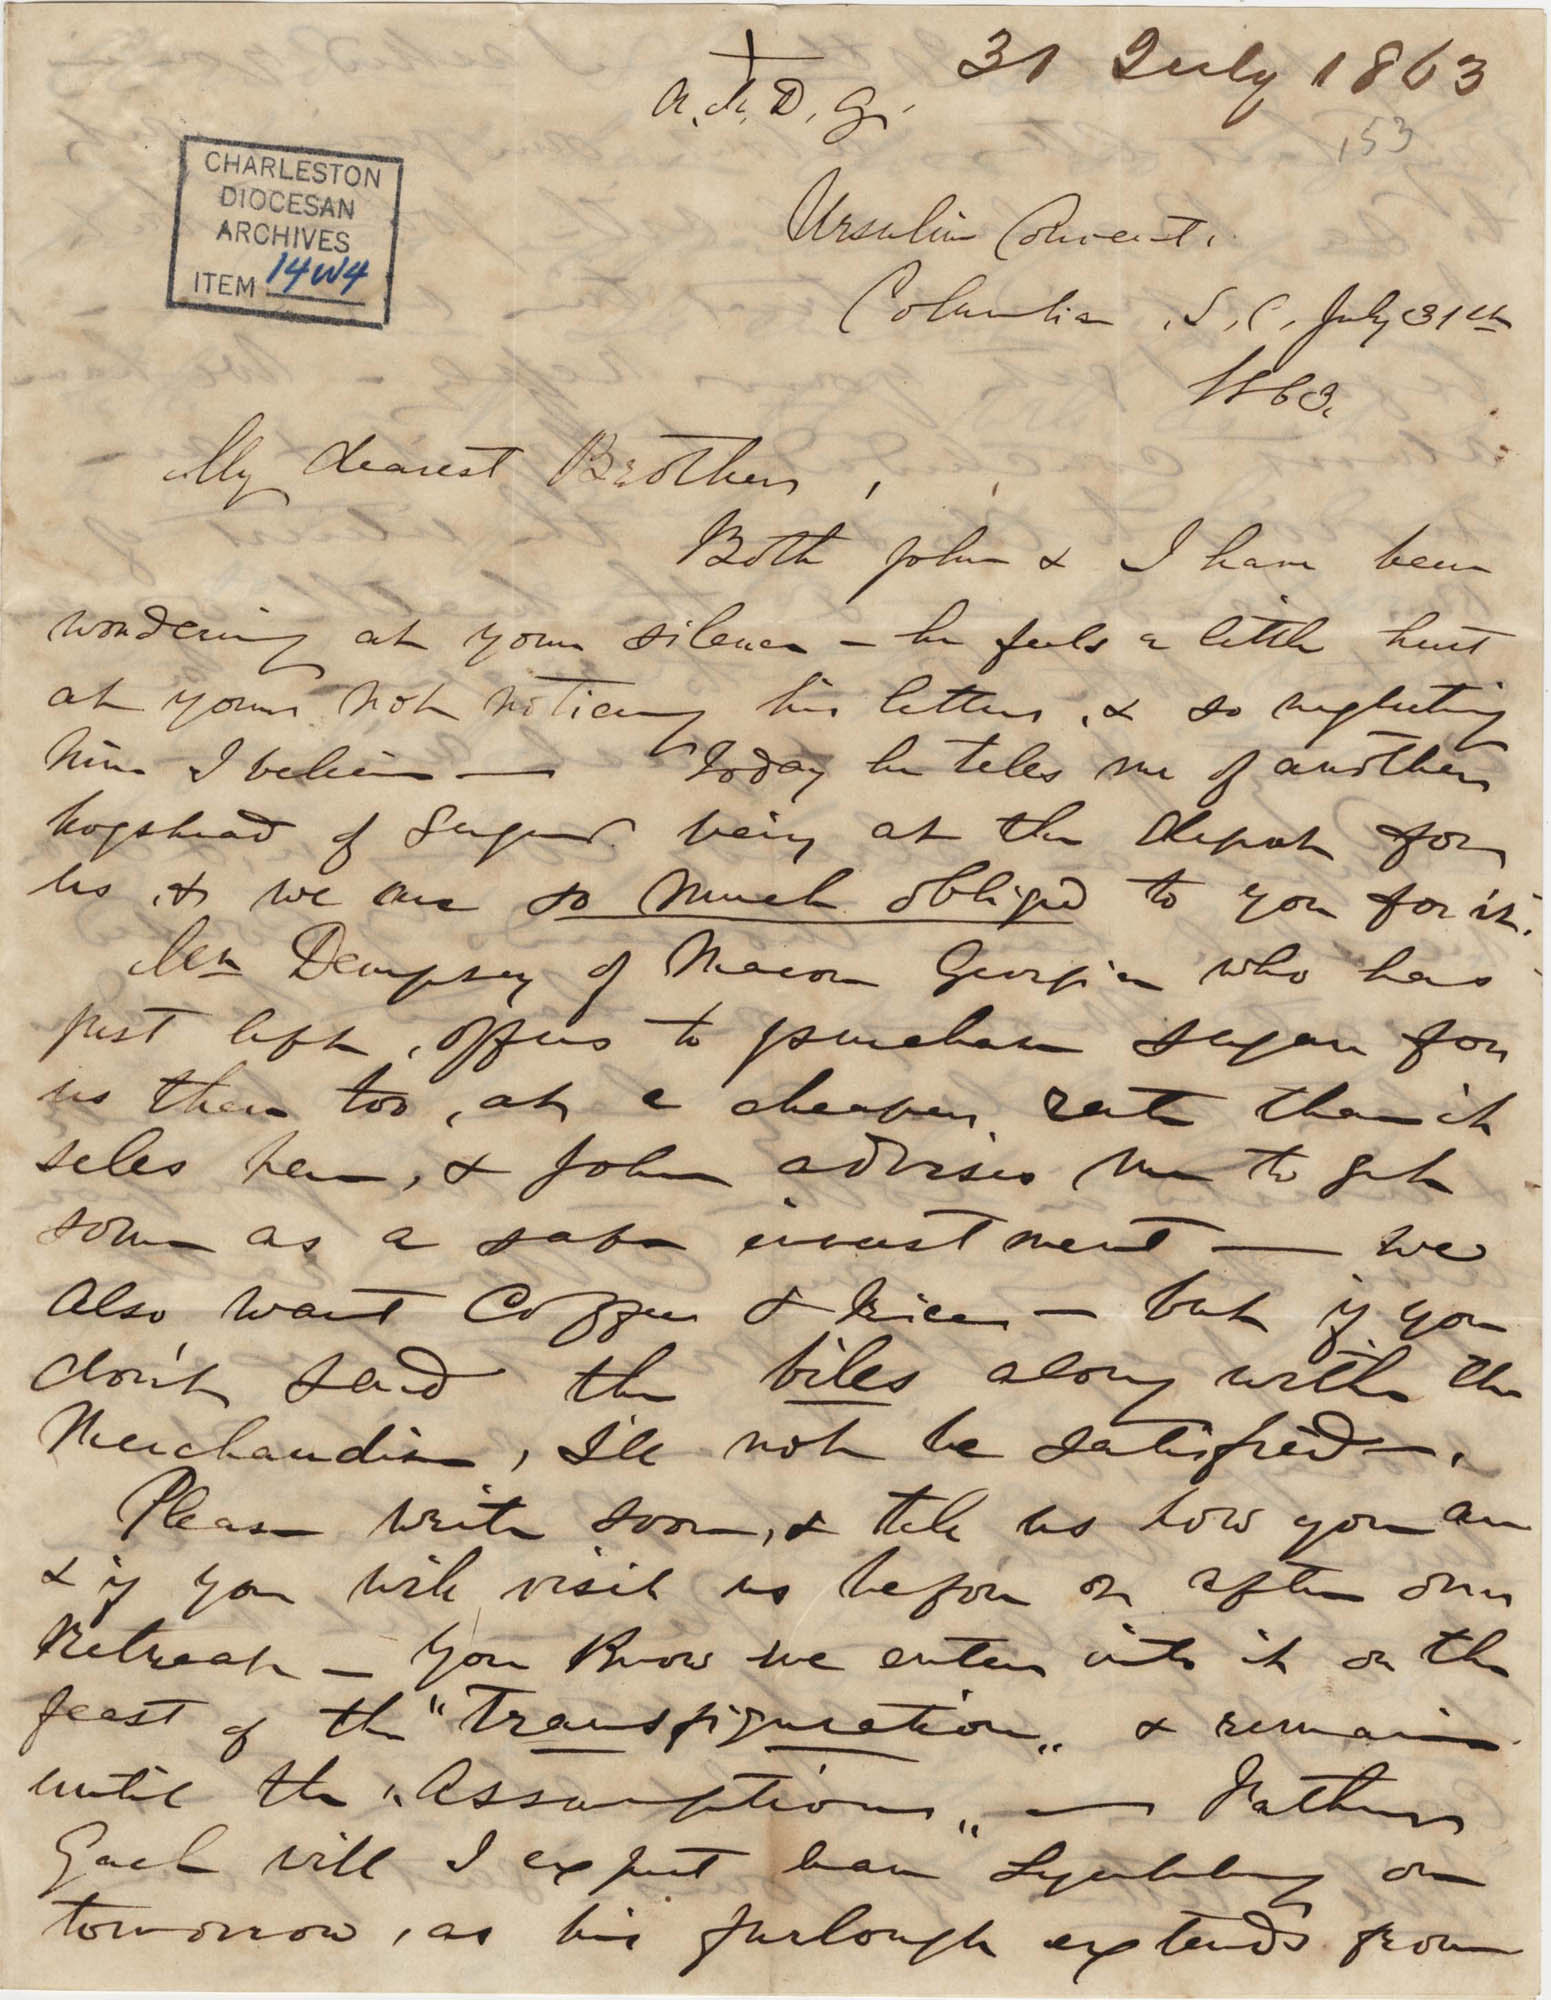 290. Madame Baptiste to Bp Patrick Lynch -- July 31, 1863